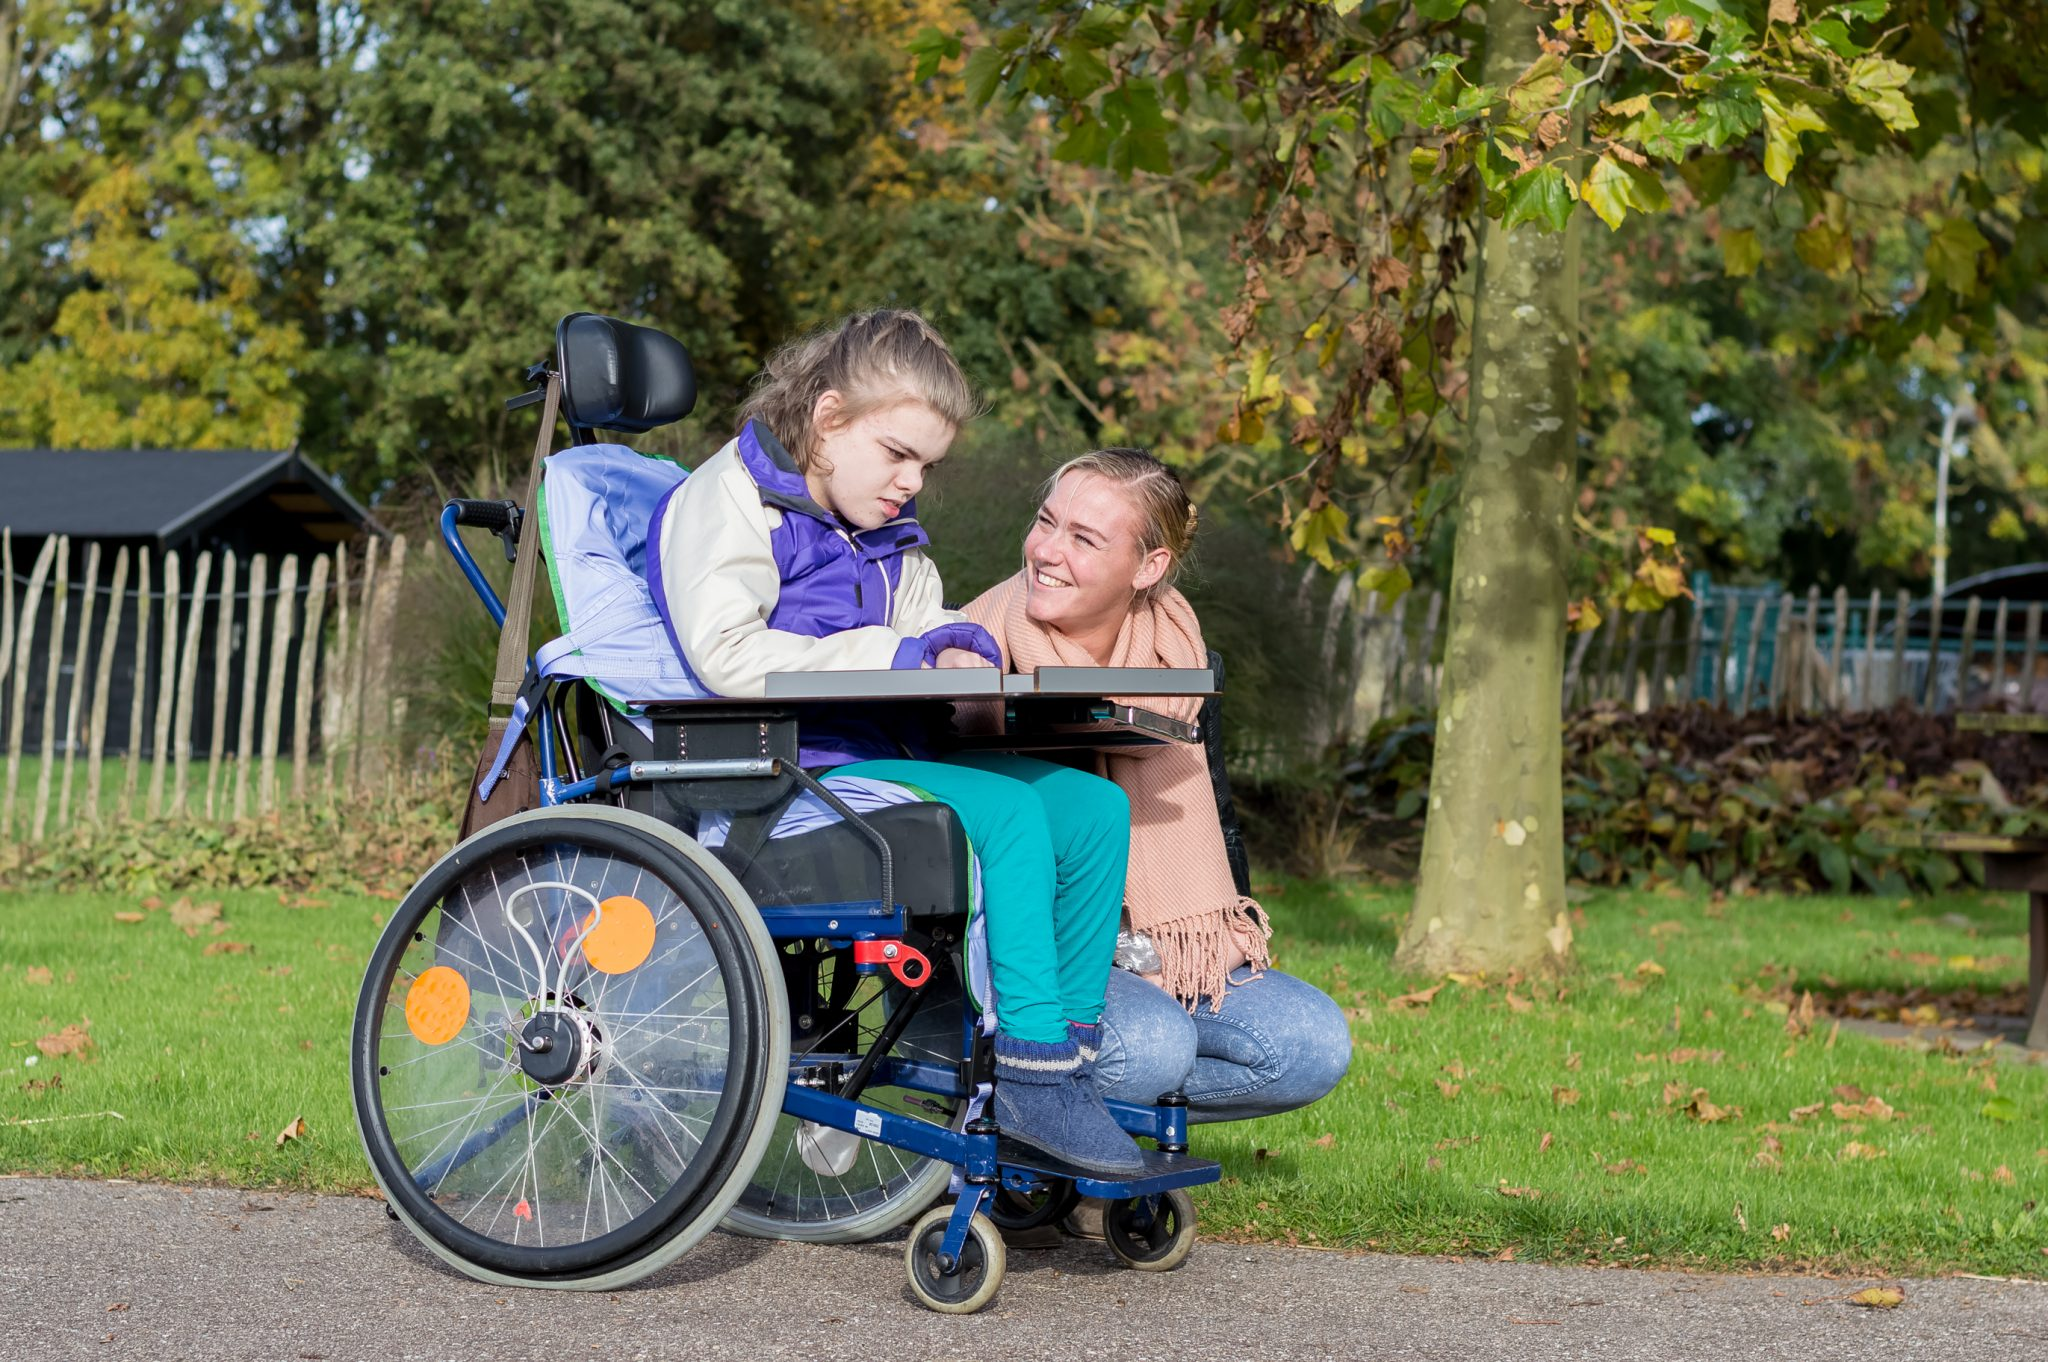 disabled girl in a wheelchair smiling with a woman knelt down next to her